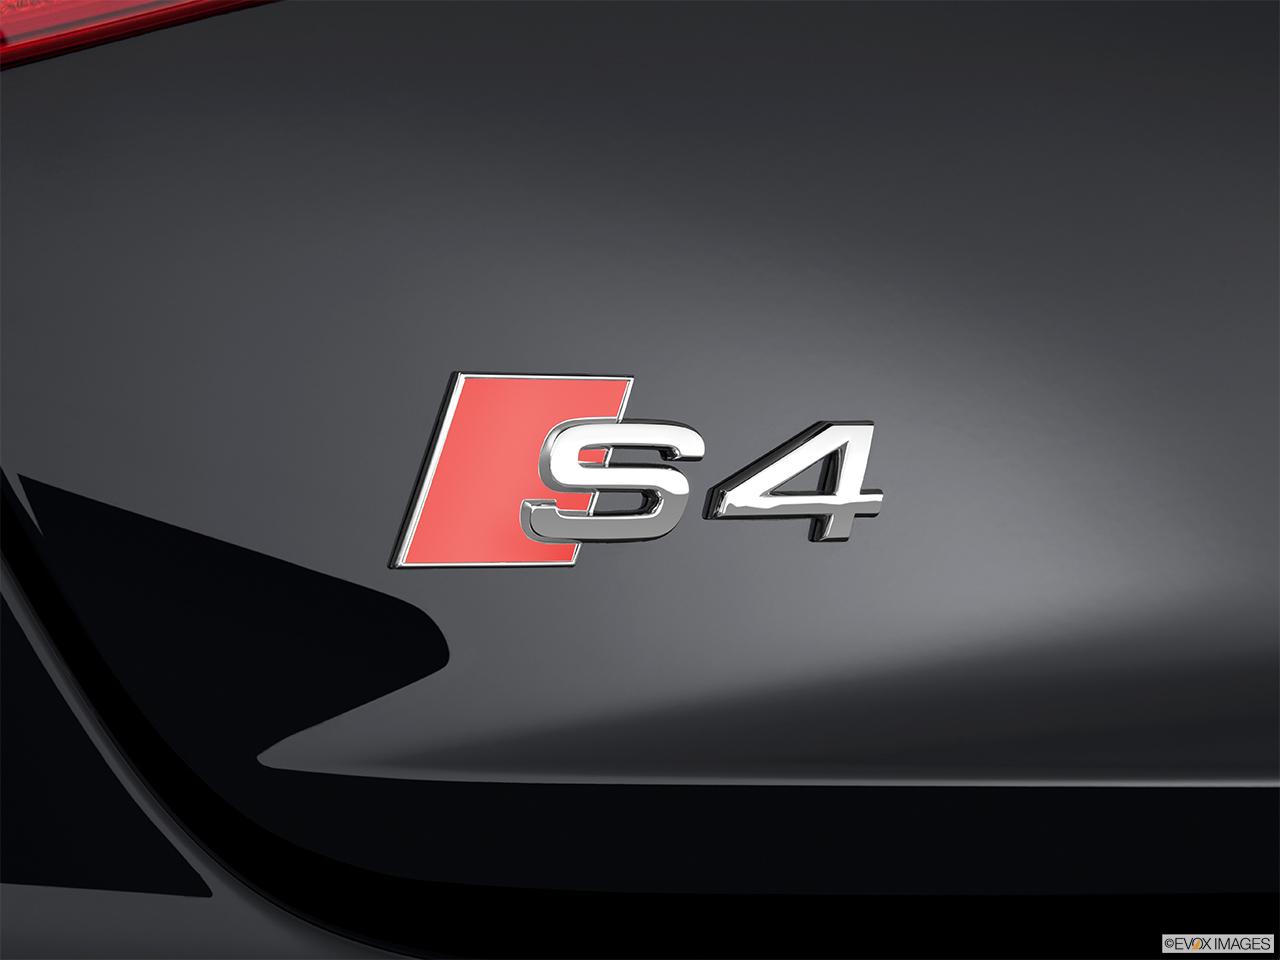 2015 Audi S4 Sedan Manual Prestige Rear Model Badge Emblem